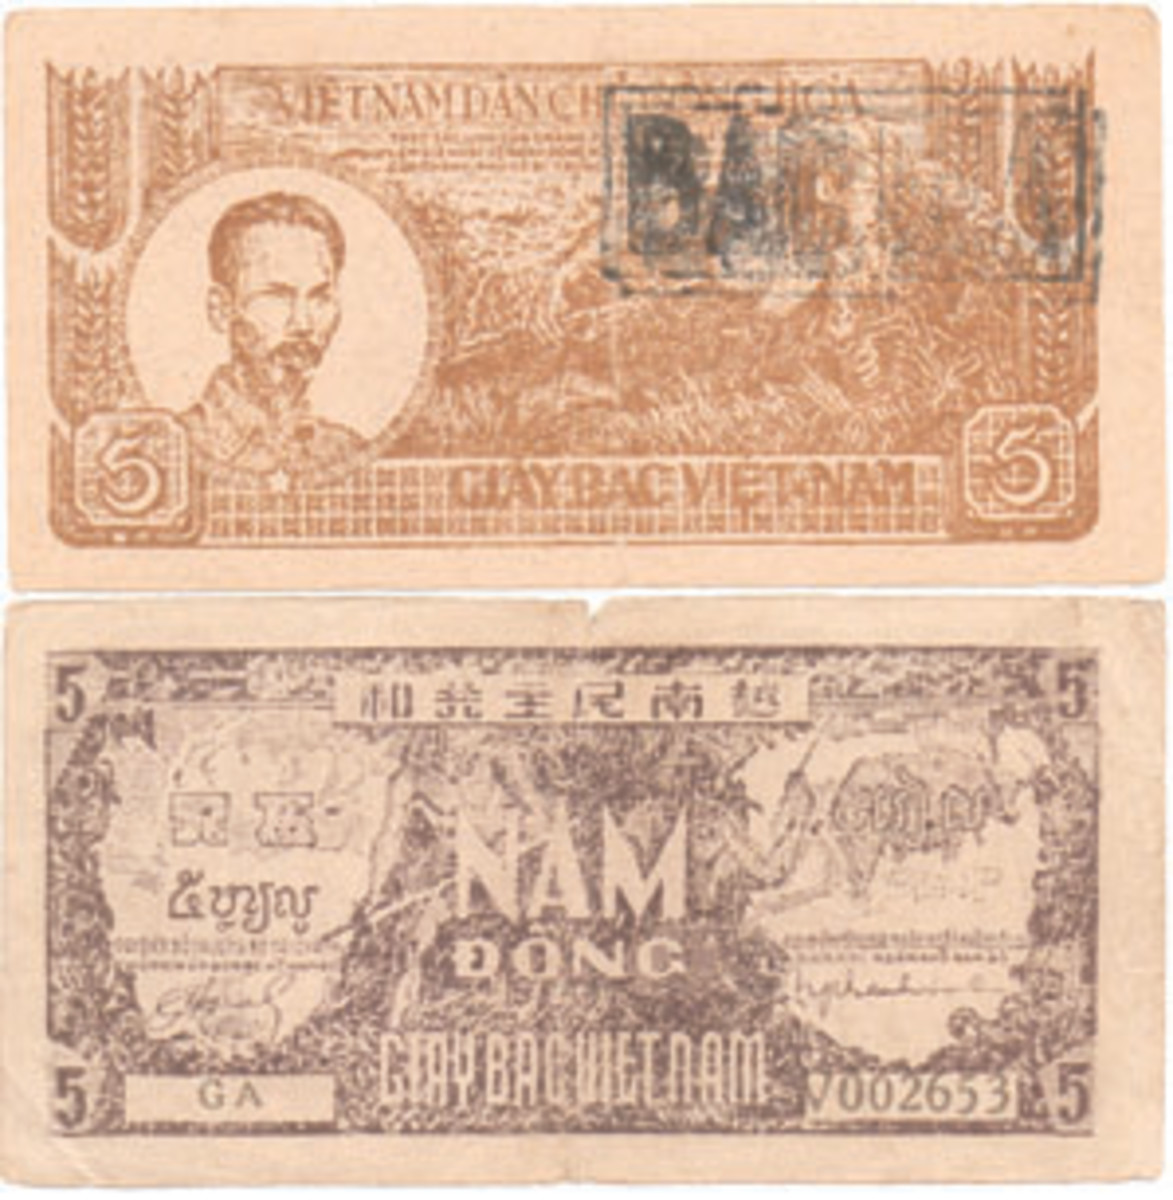 Democratic Republic of Viet Nam 5 Dong note, once believed a counterfeit (over stamped) by the Vietnamese because the letter A was never used in their numbering system. Daniel III, considers it an error because of the quality of the note printing.